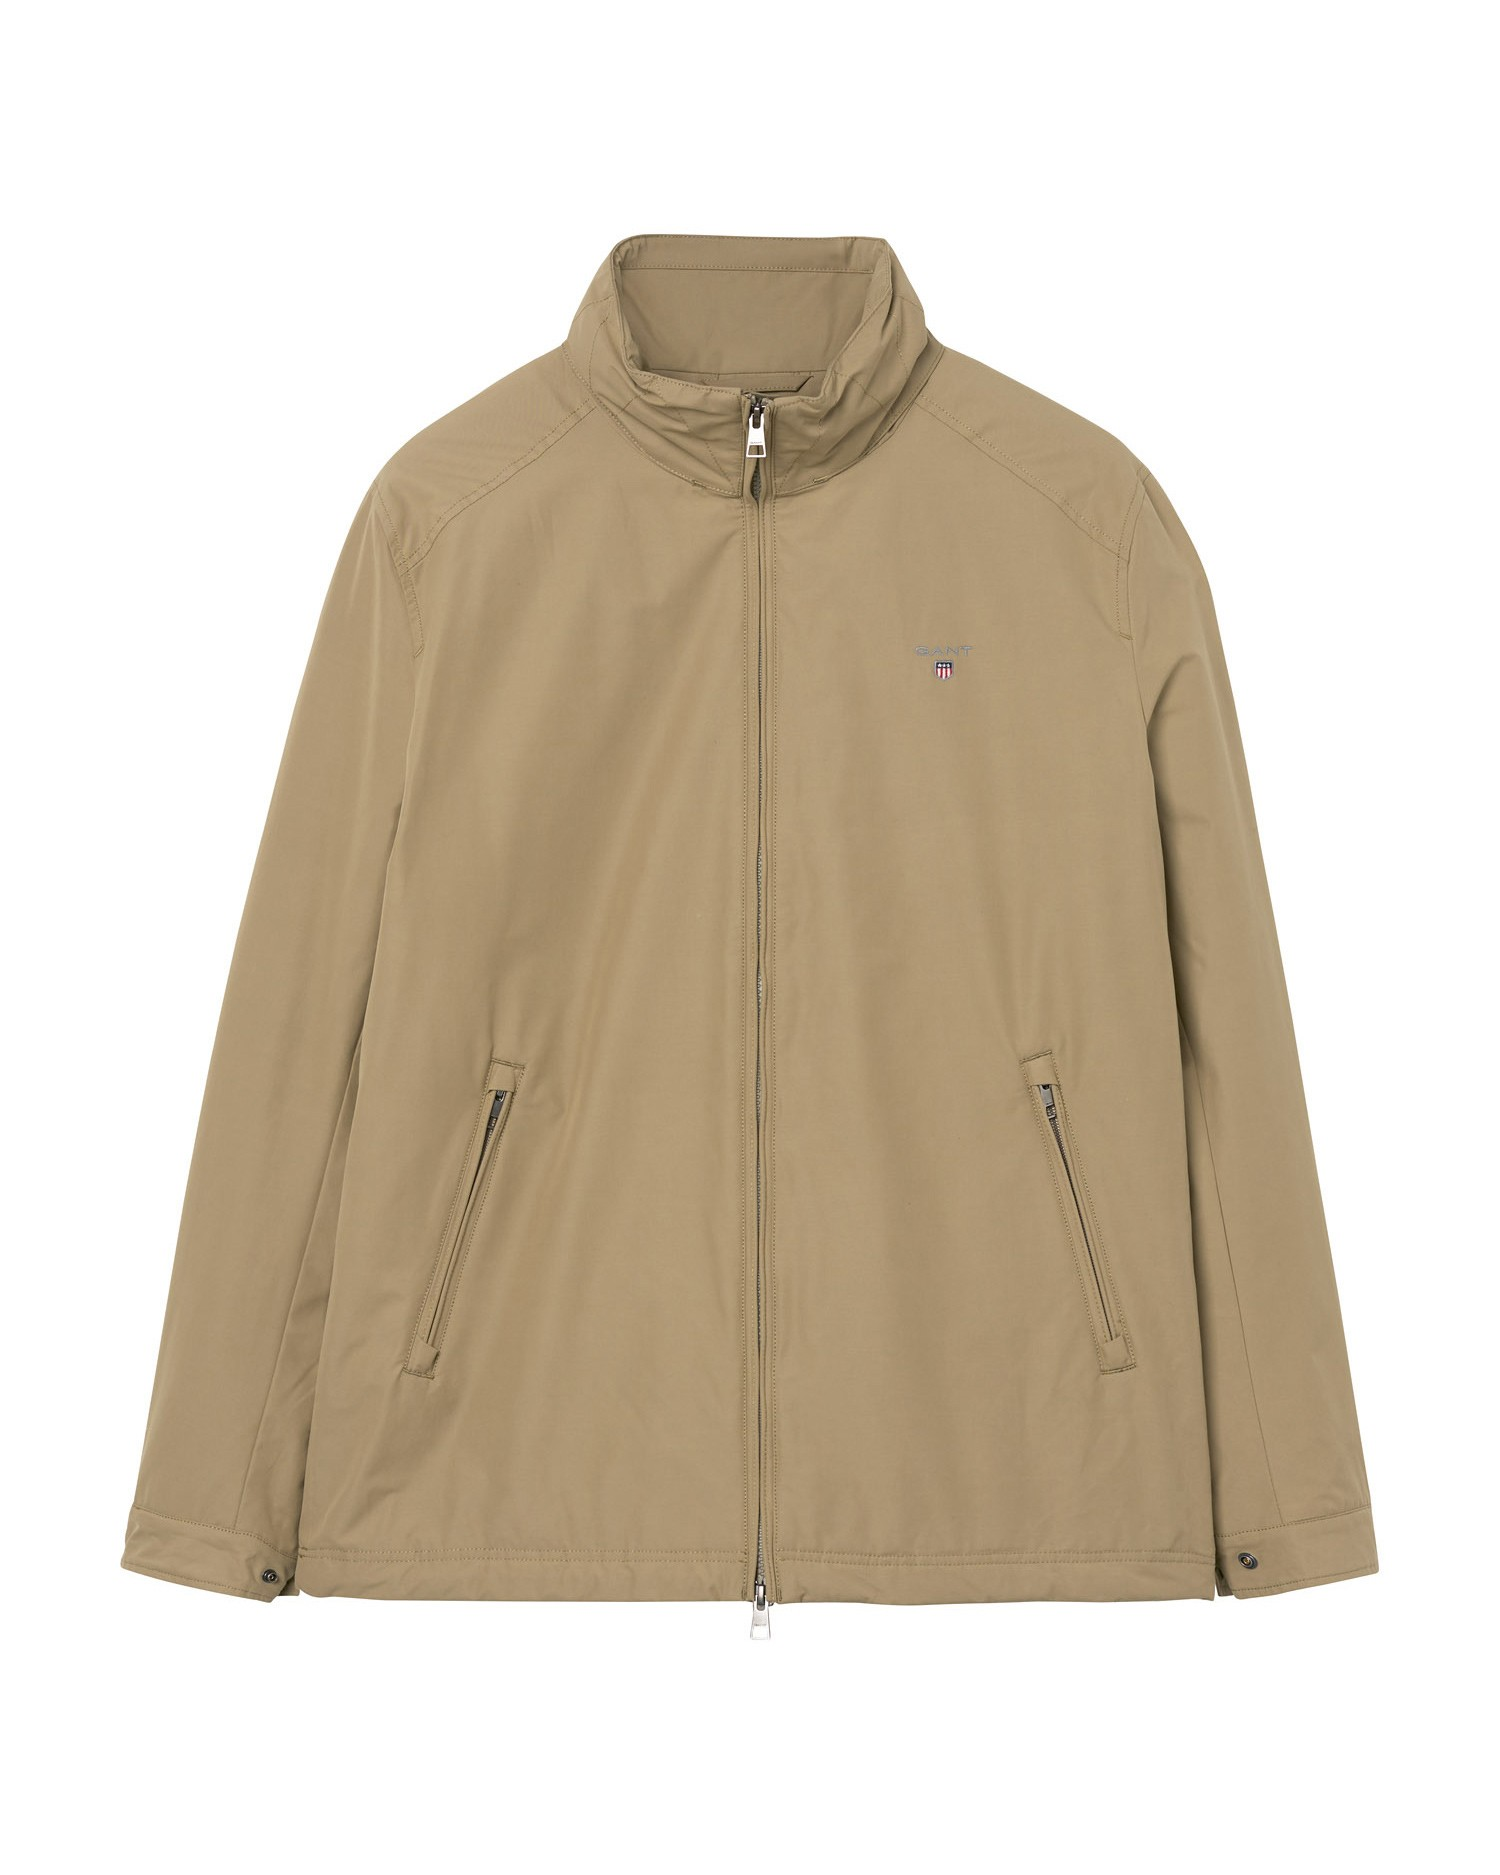 GANT Men's The Midlength Jackets - 7001533